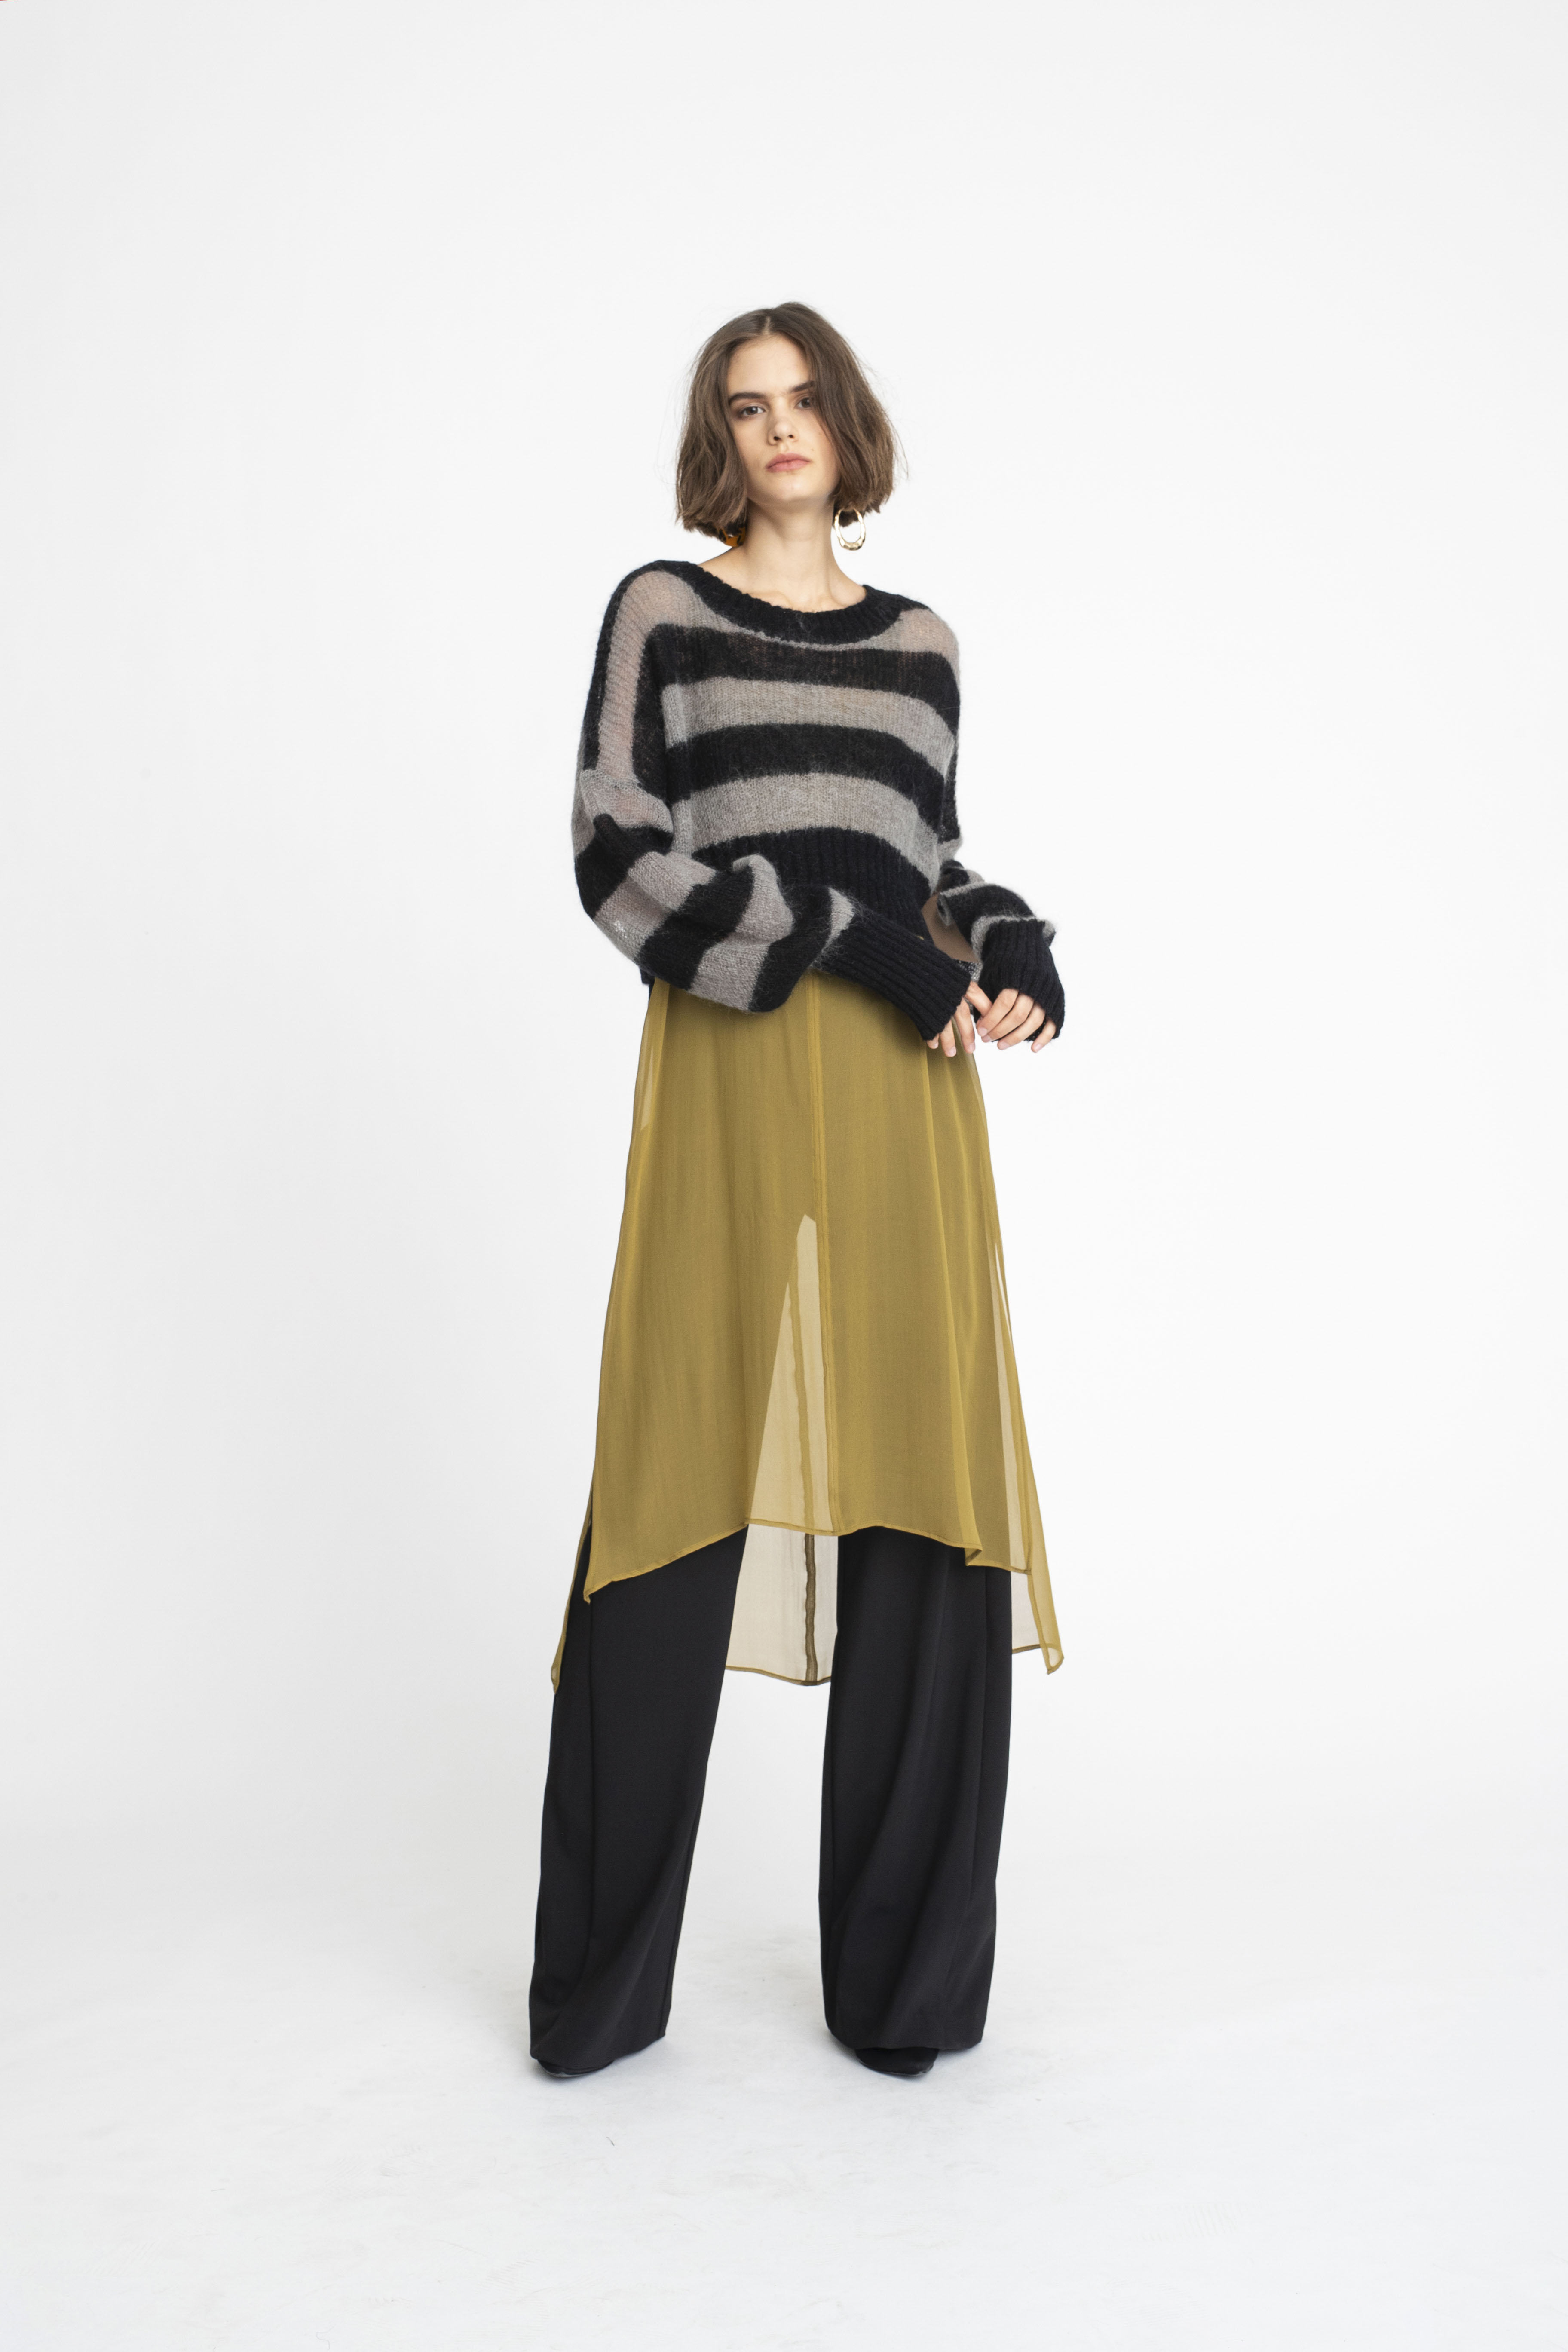 Abbreviate-Sweater_Swivel-Tunic_Panelled-Joust-Pant_TaylorBoutique_AW19_L61_1477-out-of-focus 2